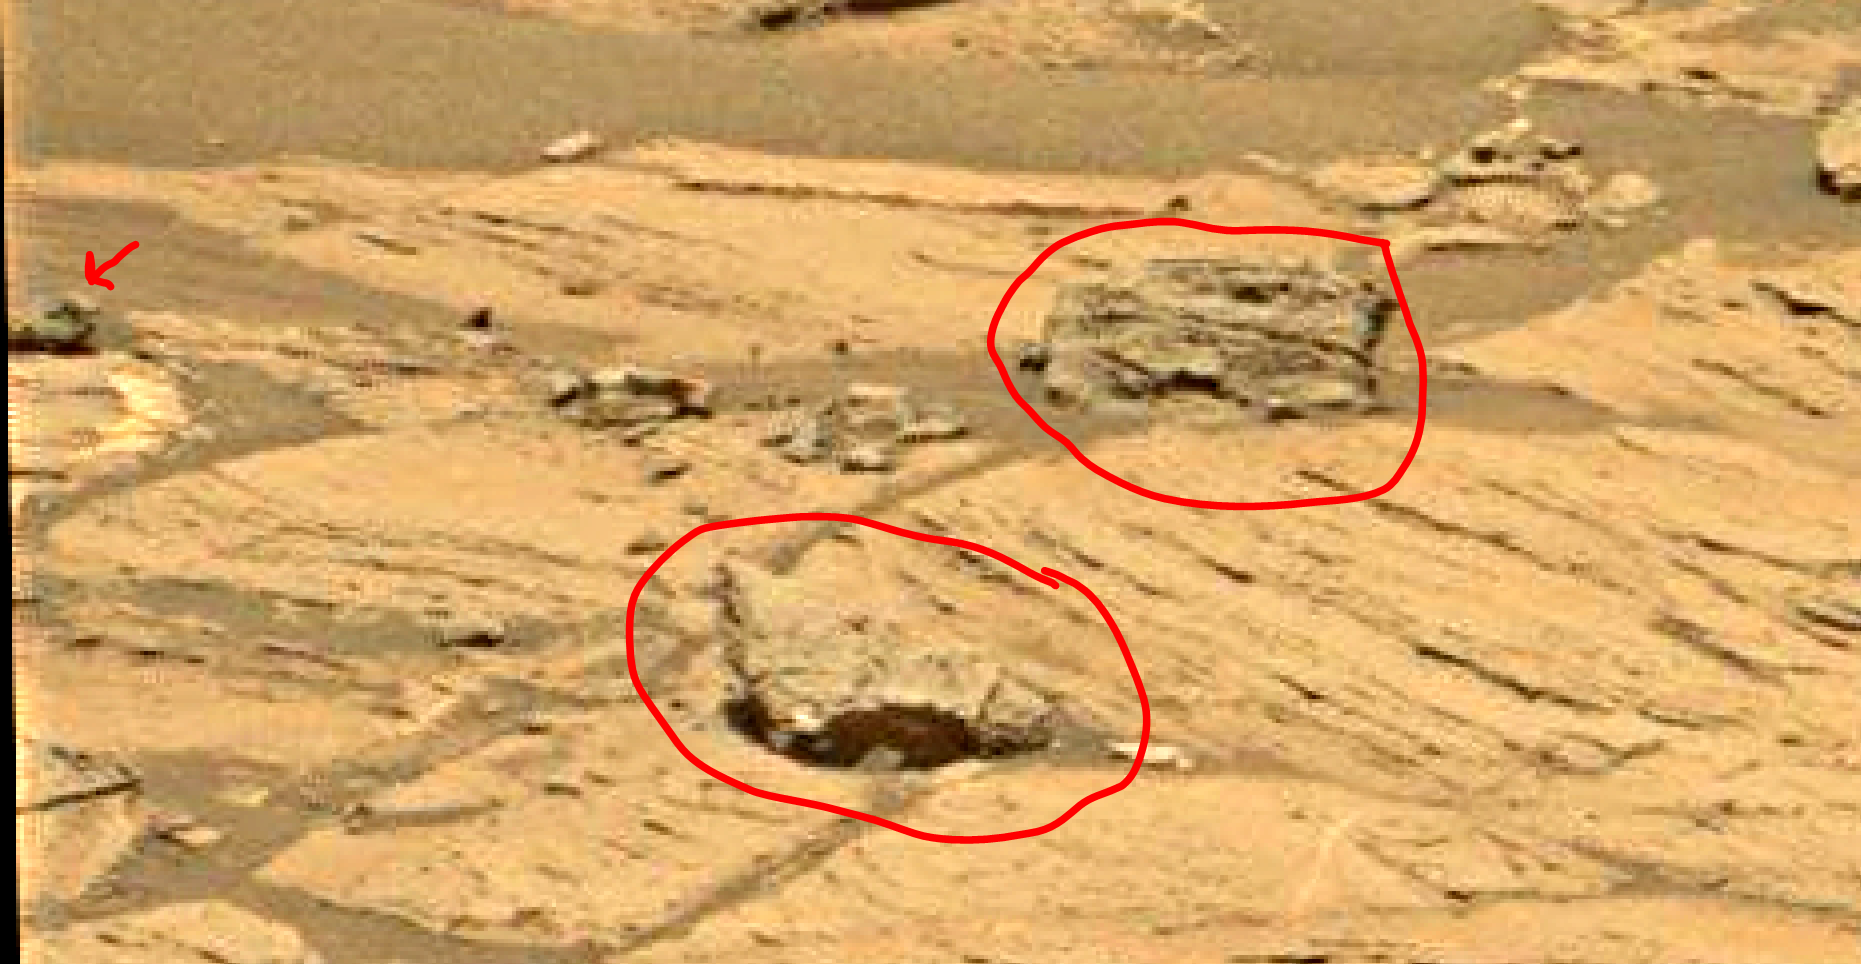 mars sol 1353 anomaly-artifacts 3a was life on mars